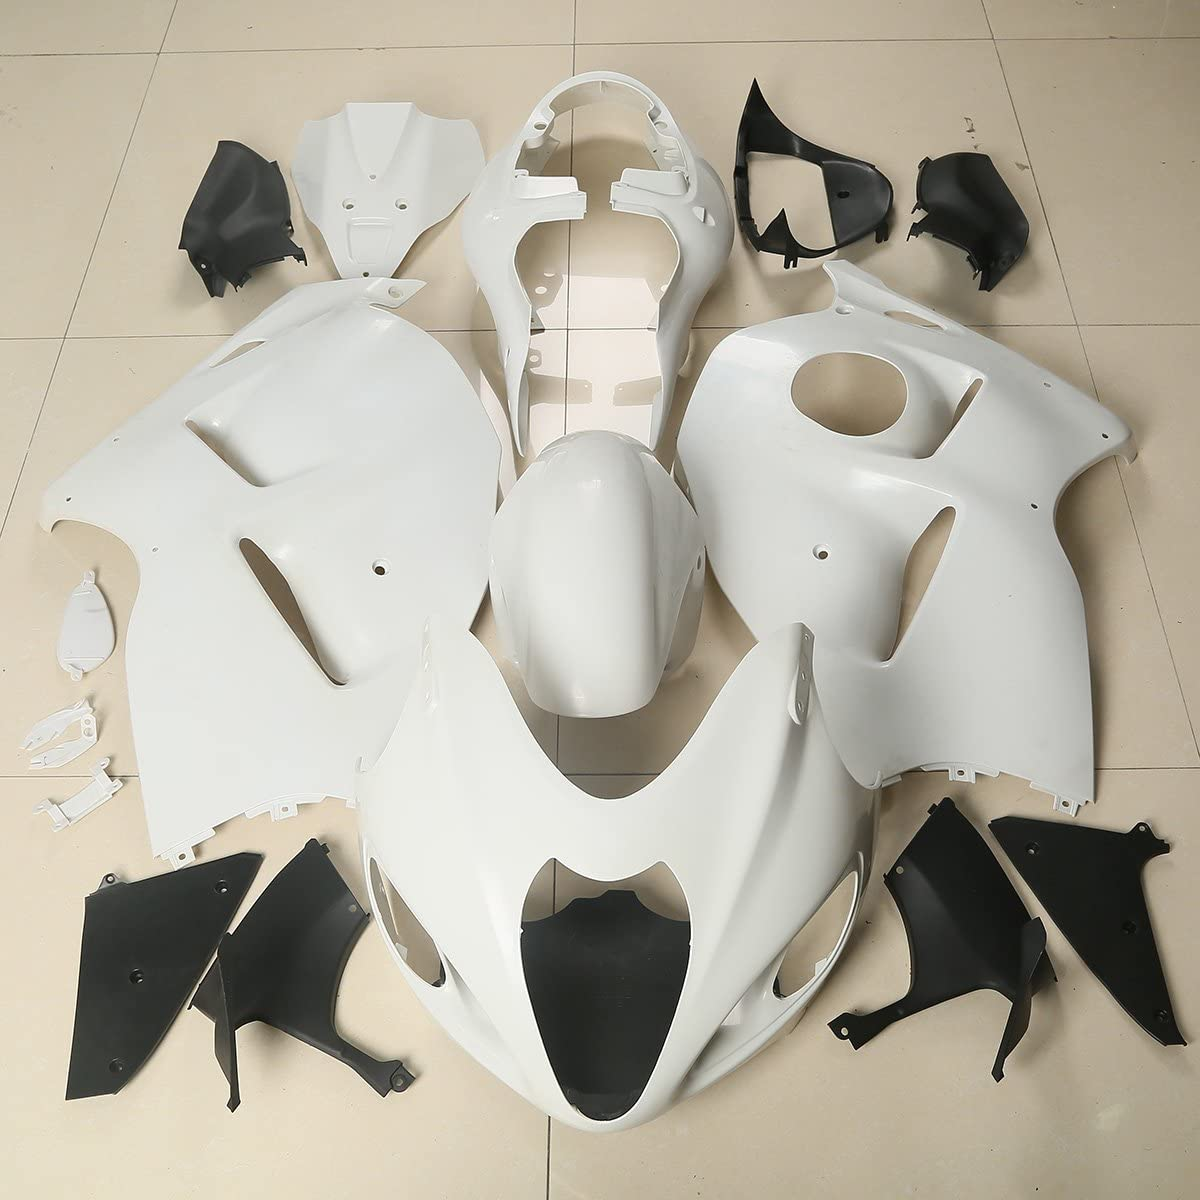 XMT-MOTO Bodywork Fairing Kit fits for Suzuki Hayabusa GSX1300R GSXR 1300 1997-2007,Unpainted White